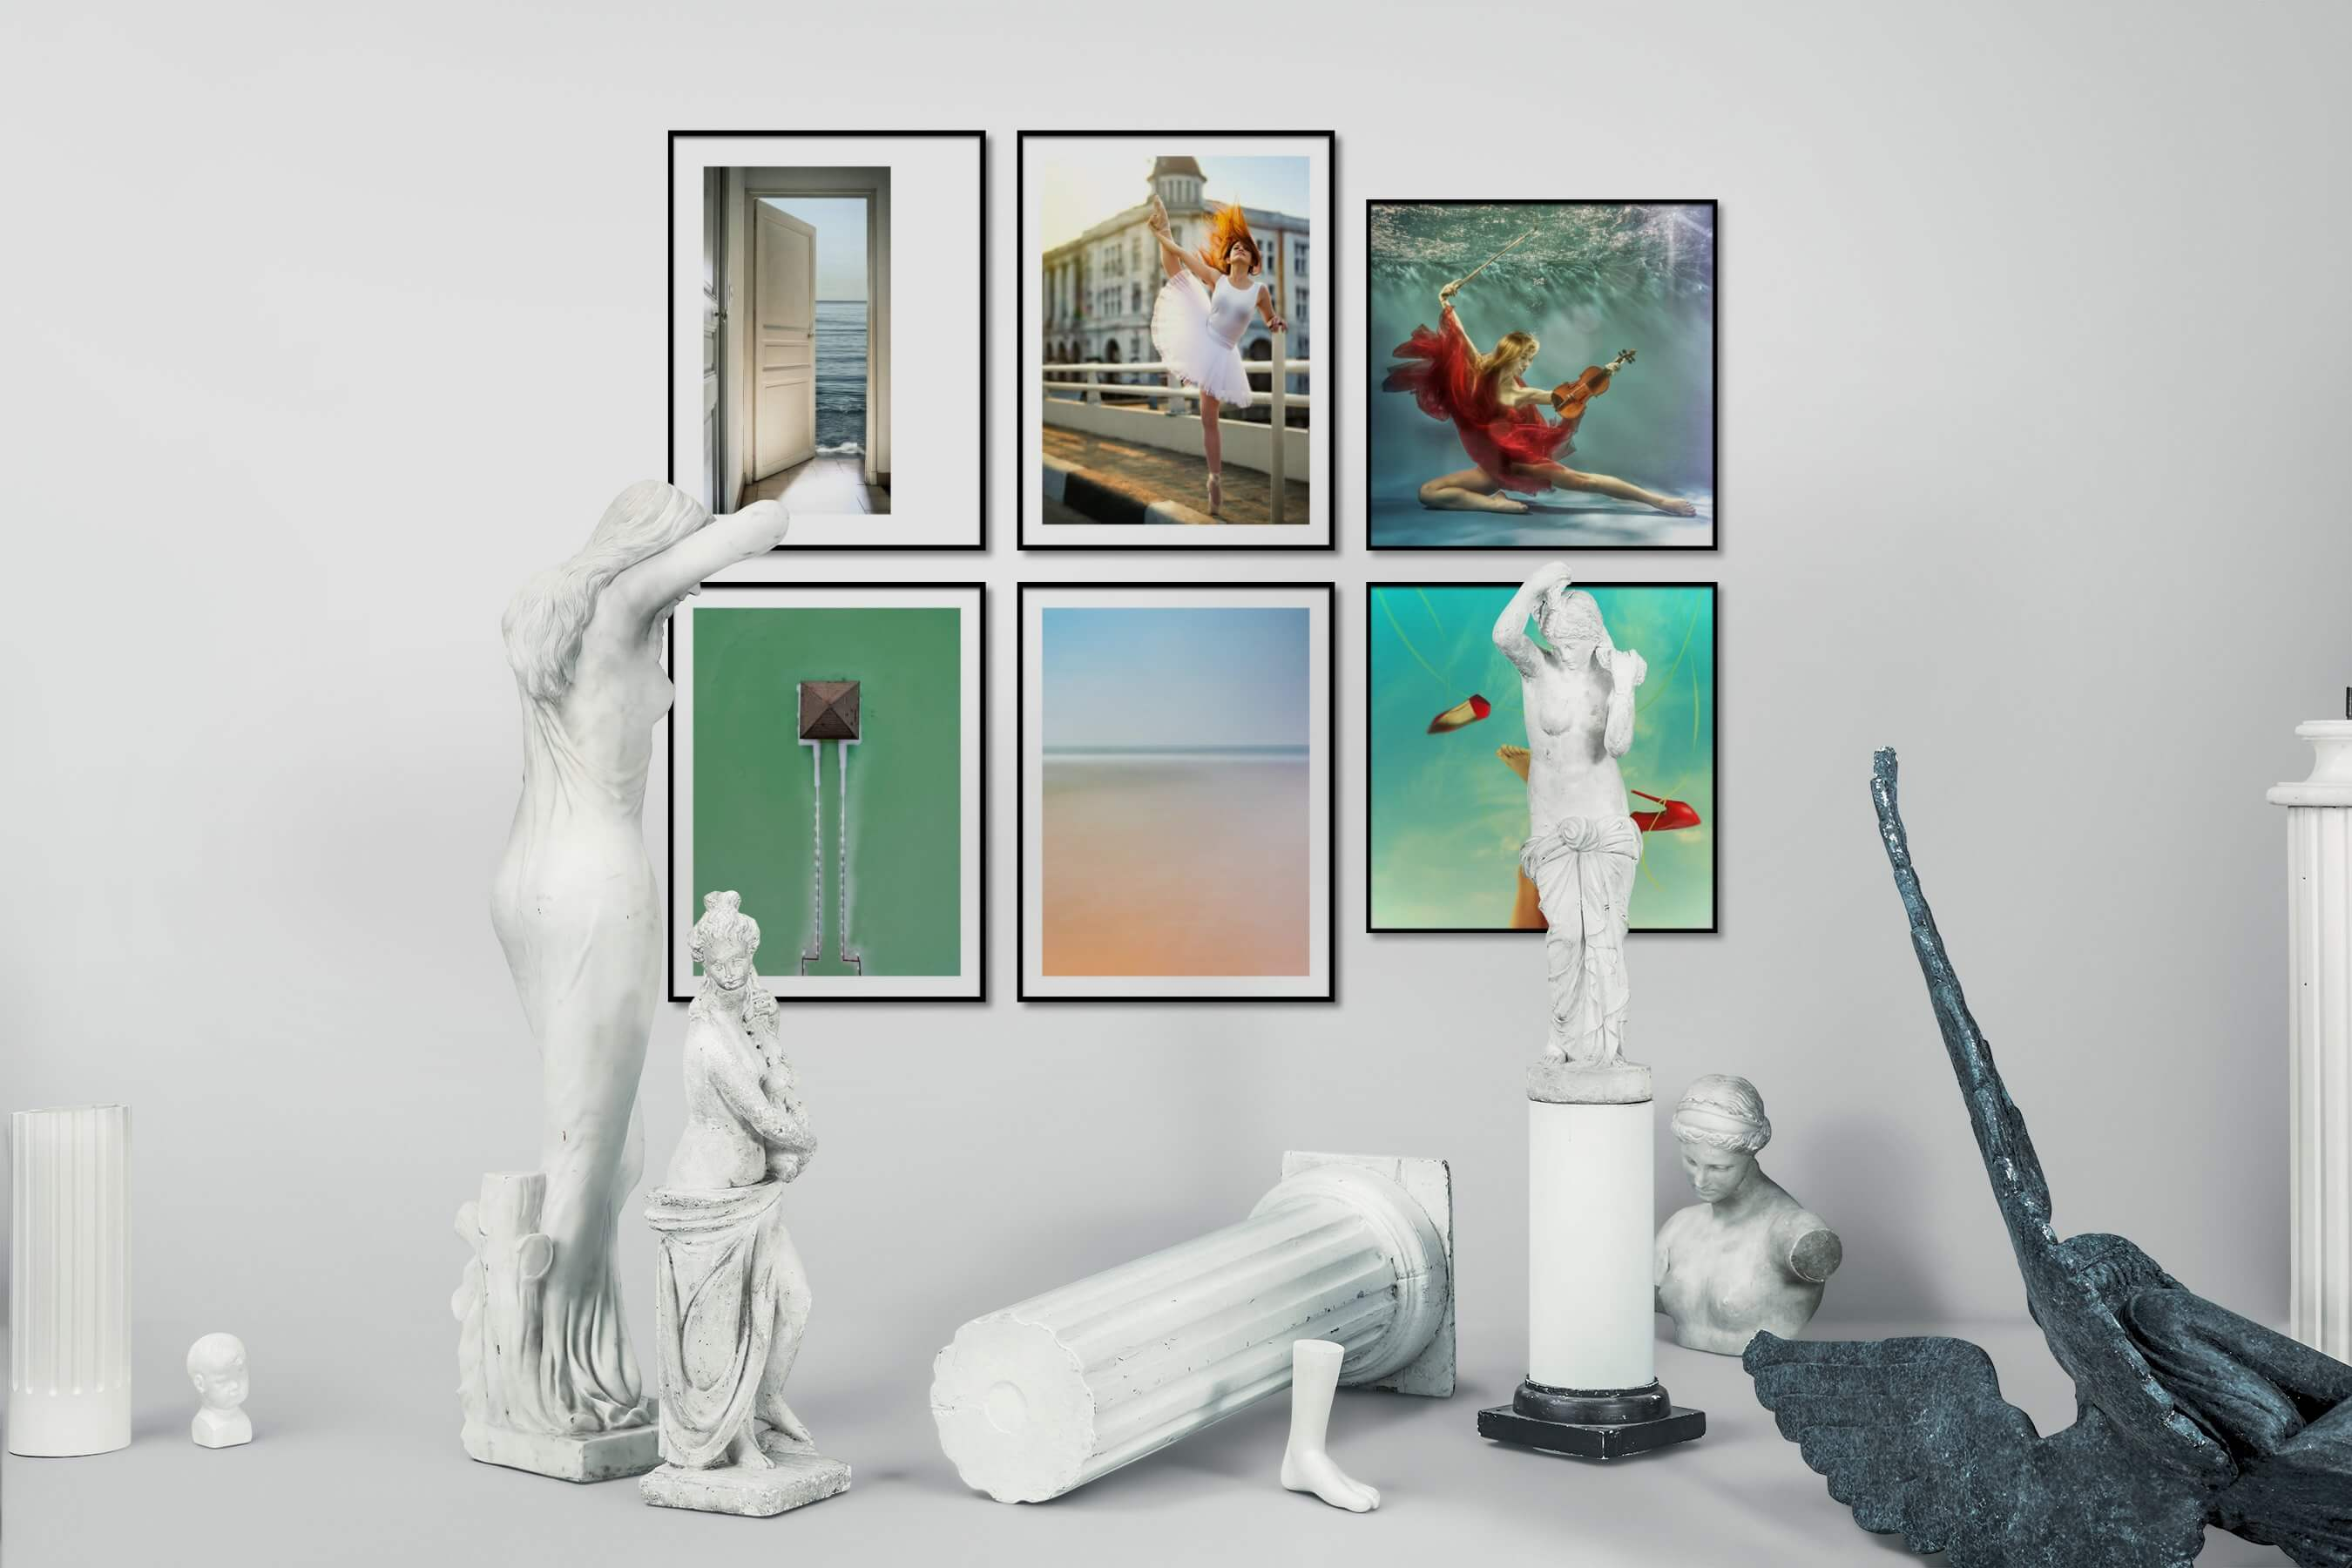 Gallery wall idea with six framed pictures arranged on a wall depicting Artsy, Beach & Water, Fashion & Beauty, City Life, For the Minimalist, and Vintage